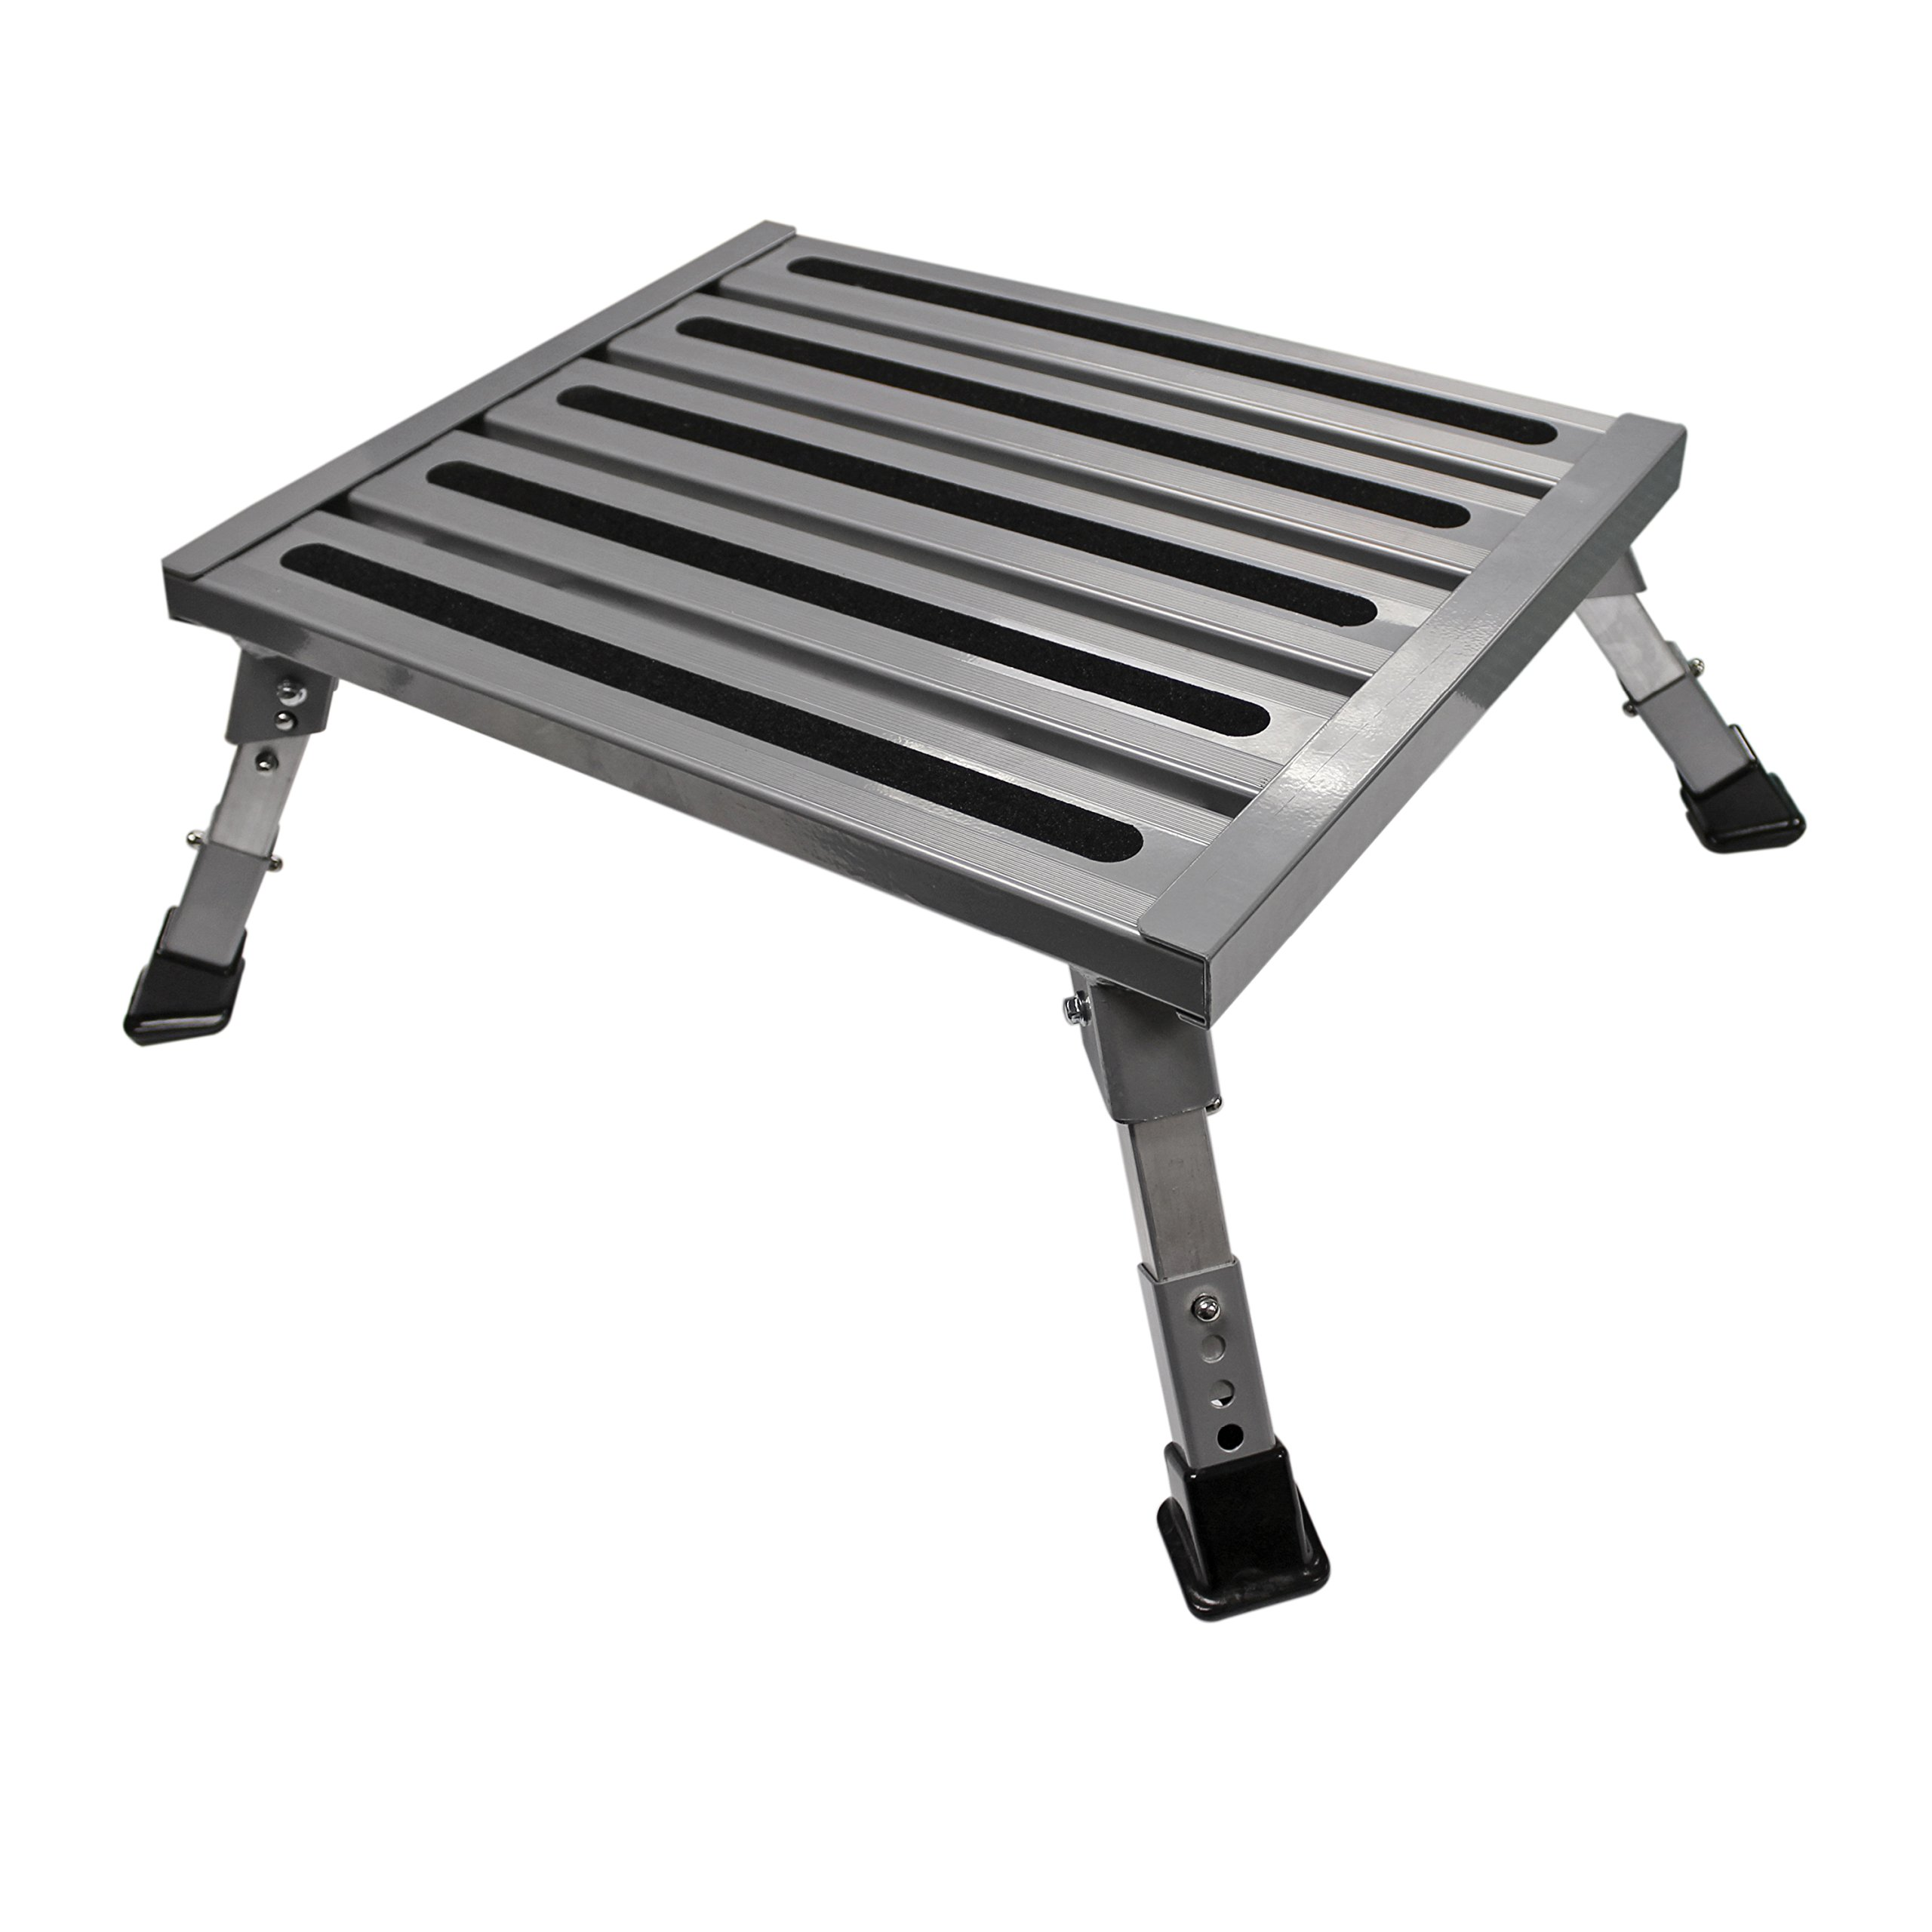 Quick Products QP-FASAL Adjustable Aluminum Platform Step